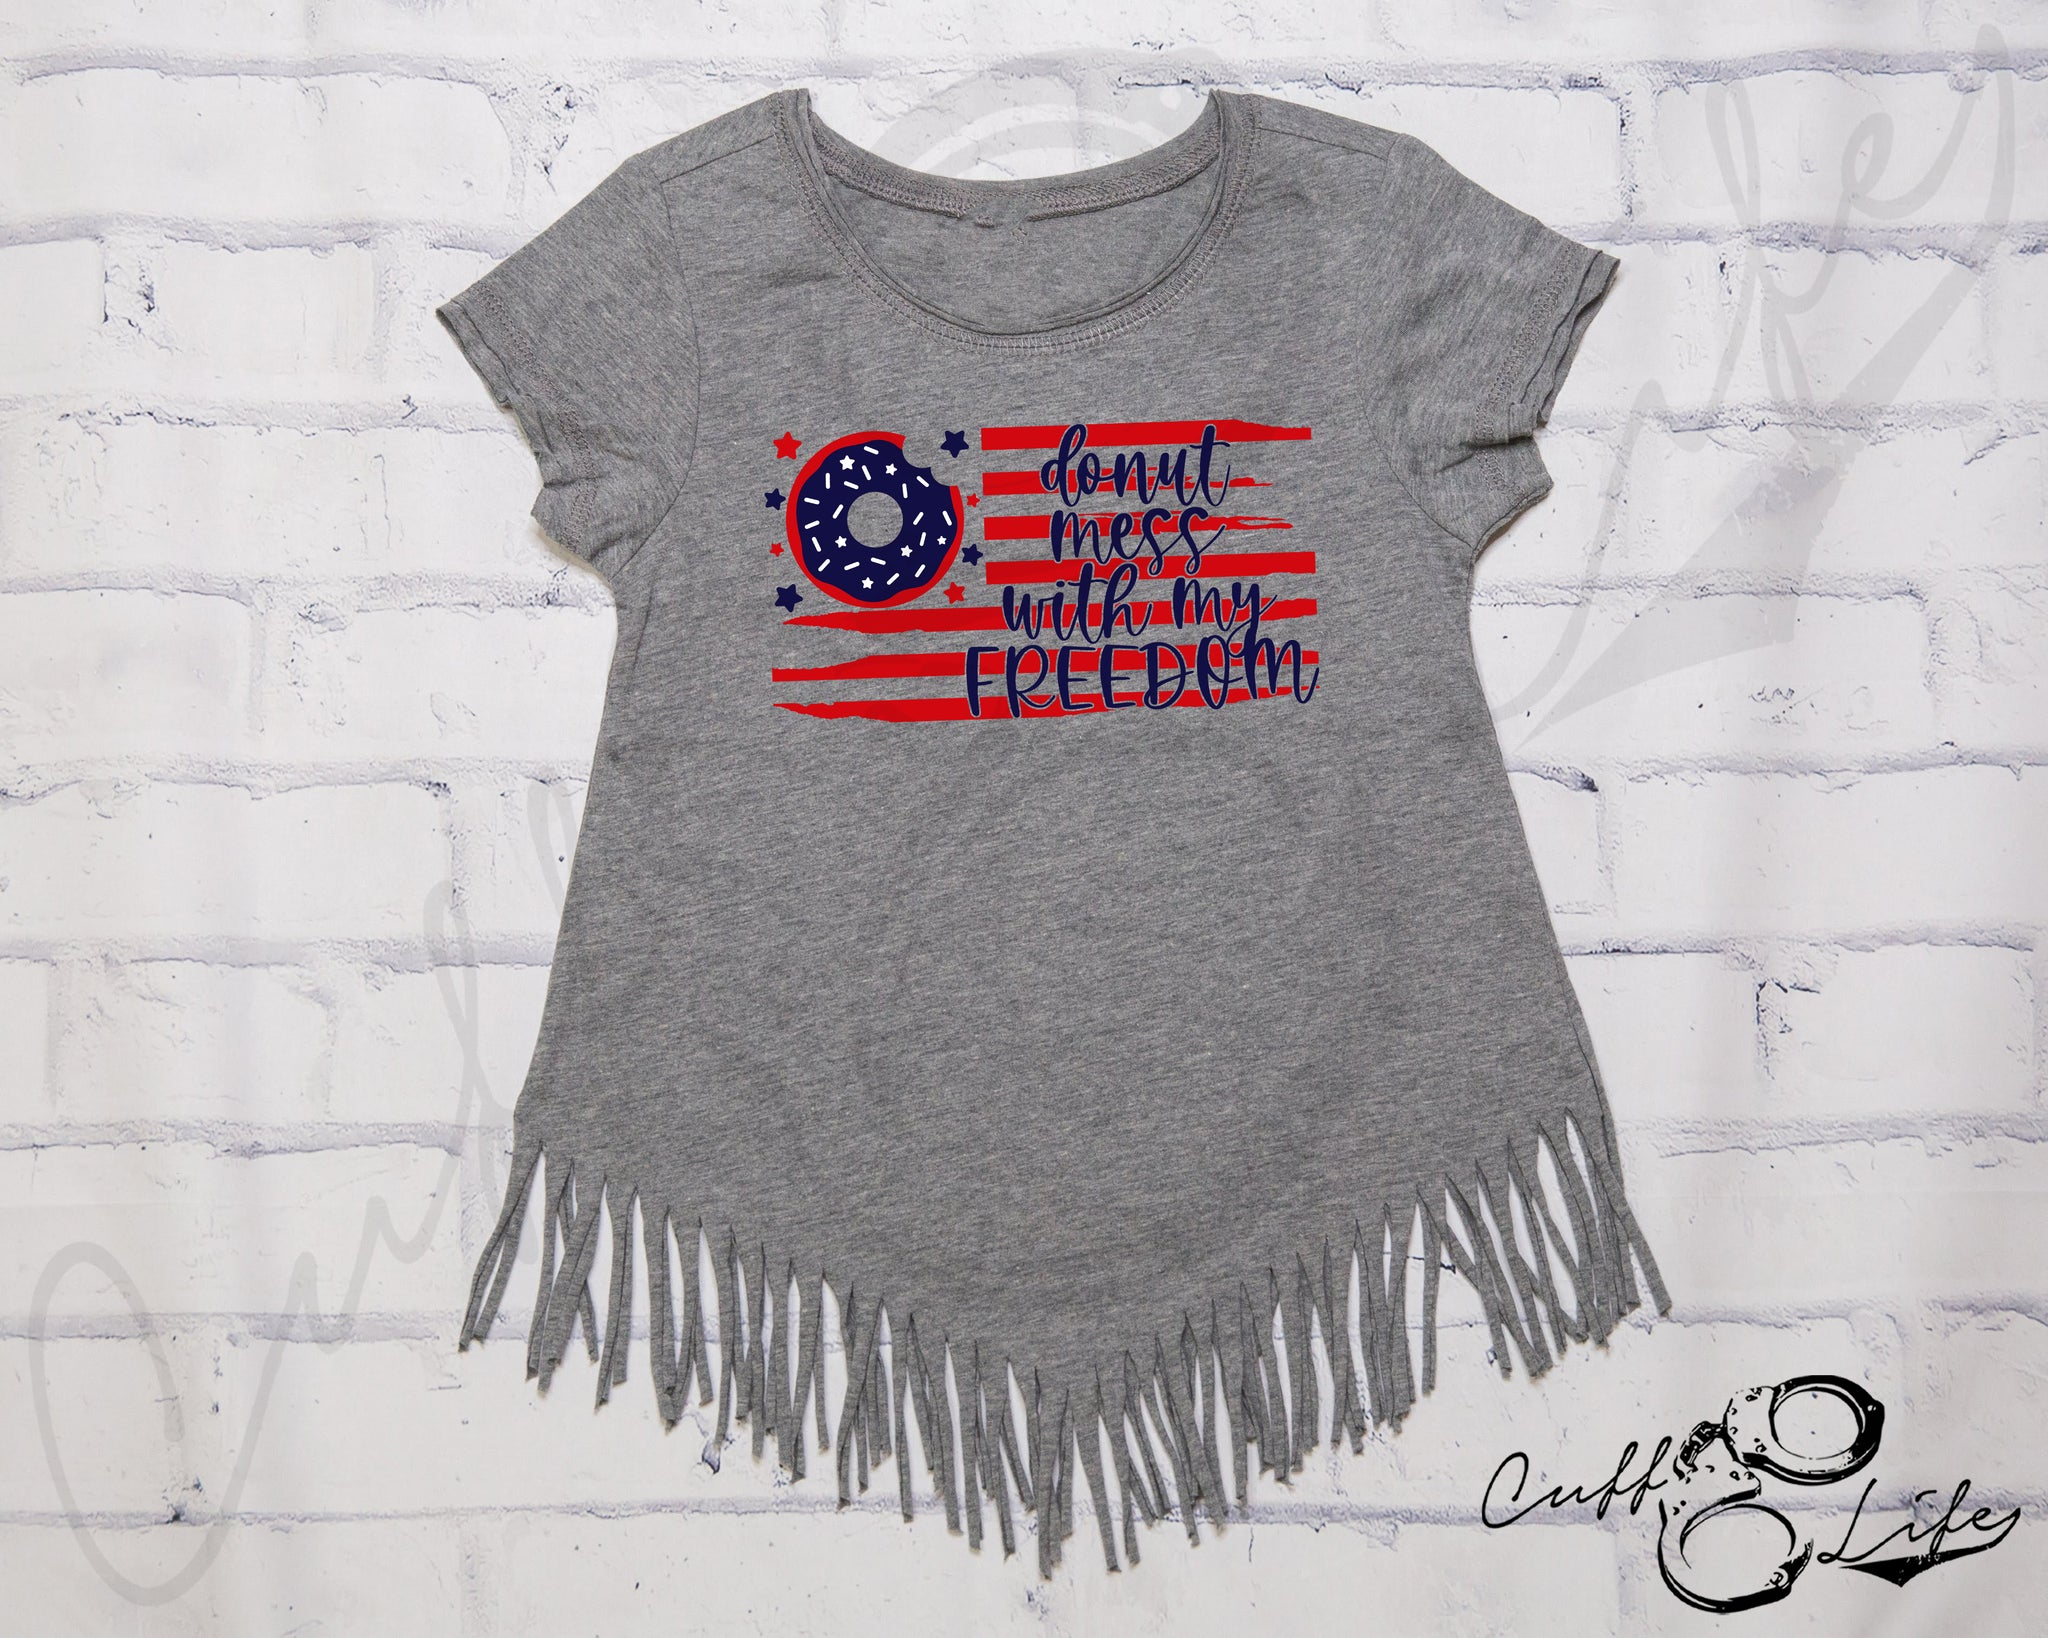 Donut Mess With My Freedom - Fringe Tee